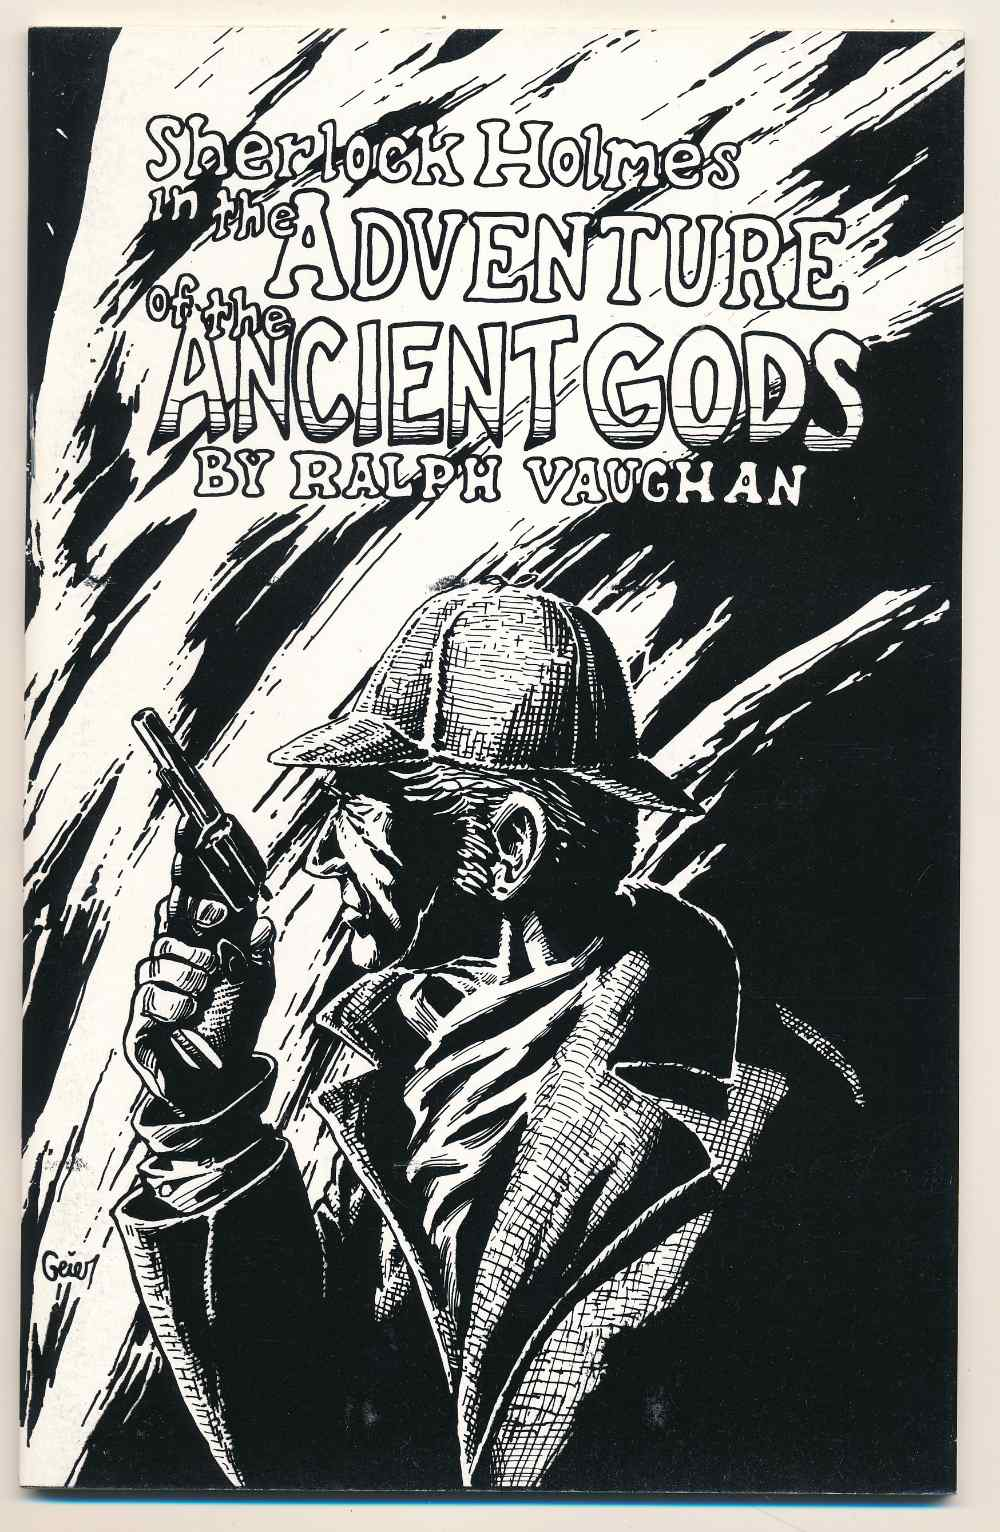 Sherlock Holmes in the adventure of the ancient gods